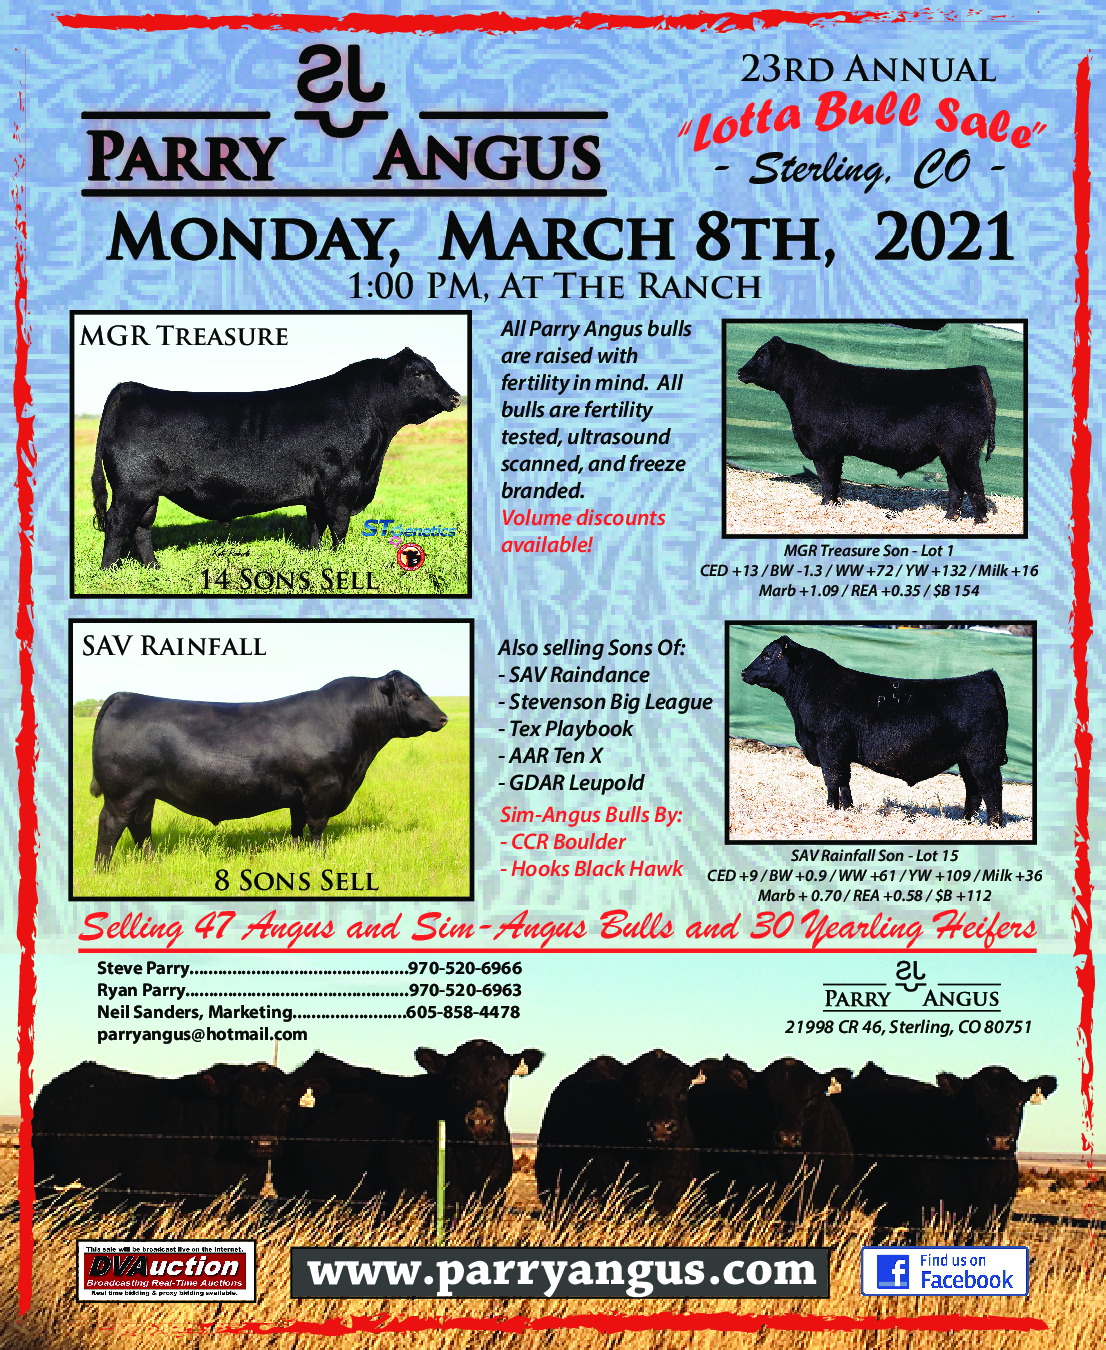 Parry Angus Bull Sale